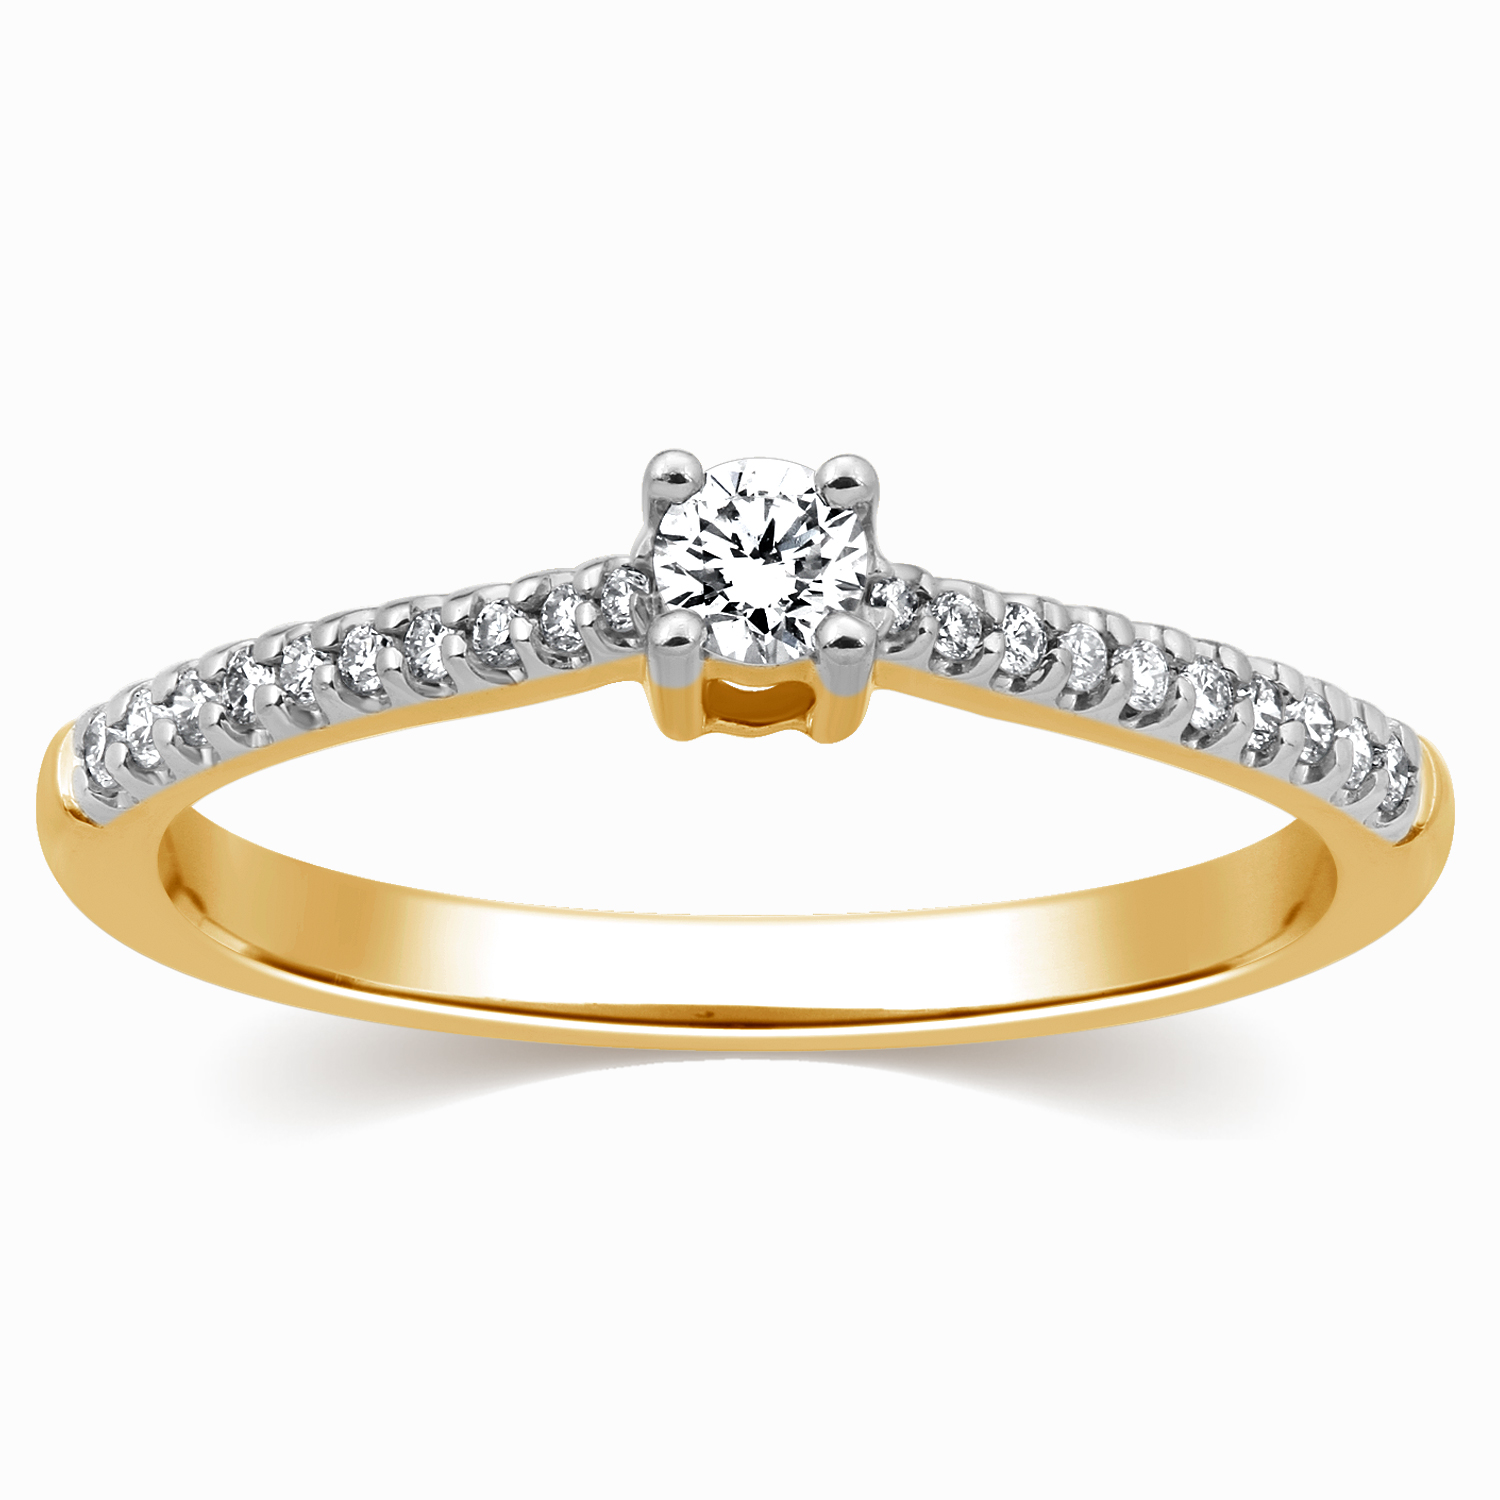 Buy Platinum Ring Online